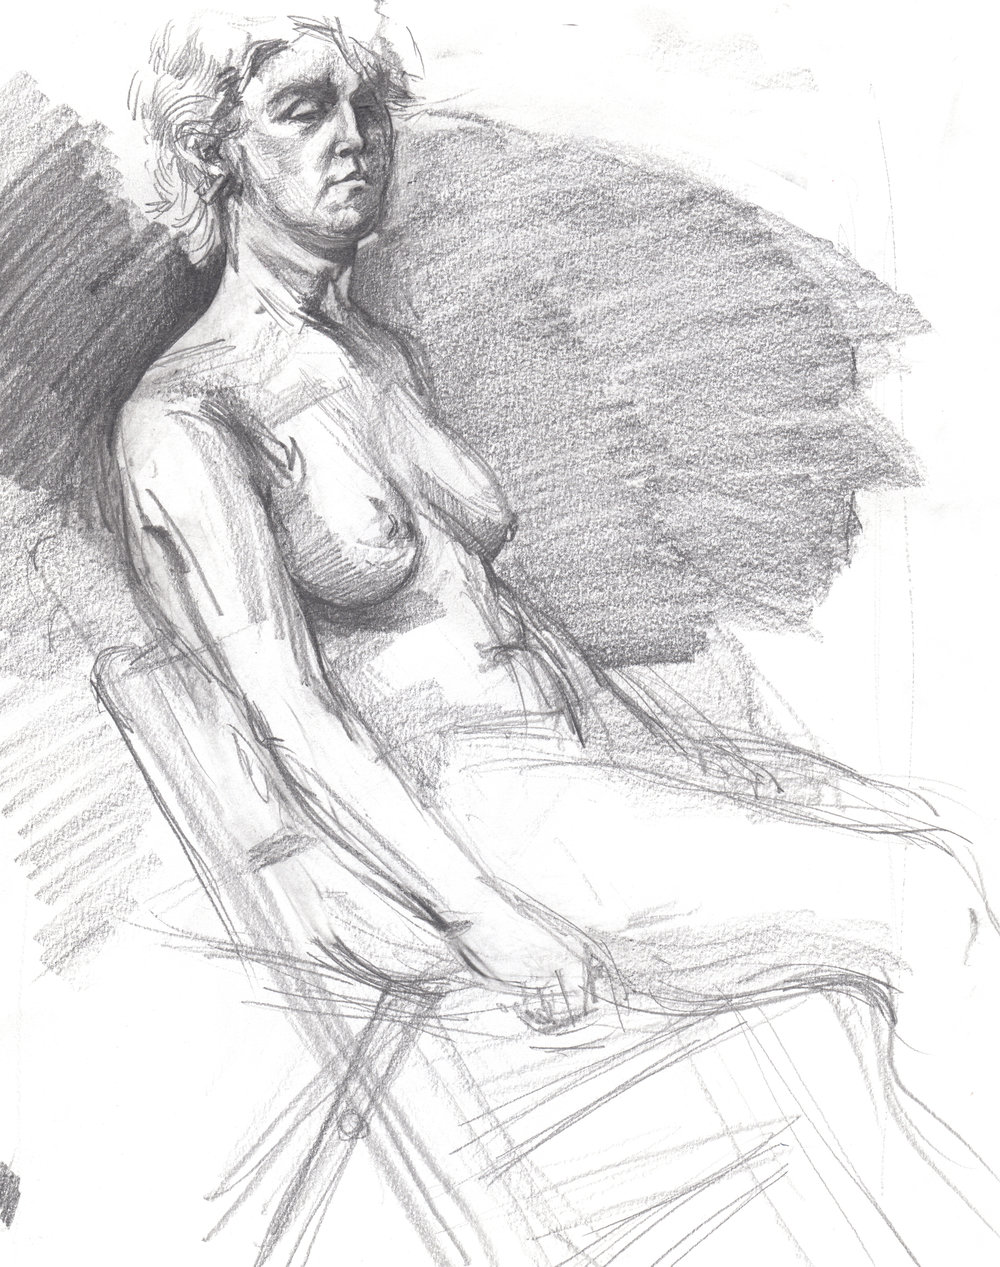 figuredrawing_01fixsmall.jpg